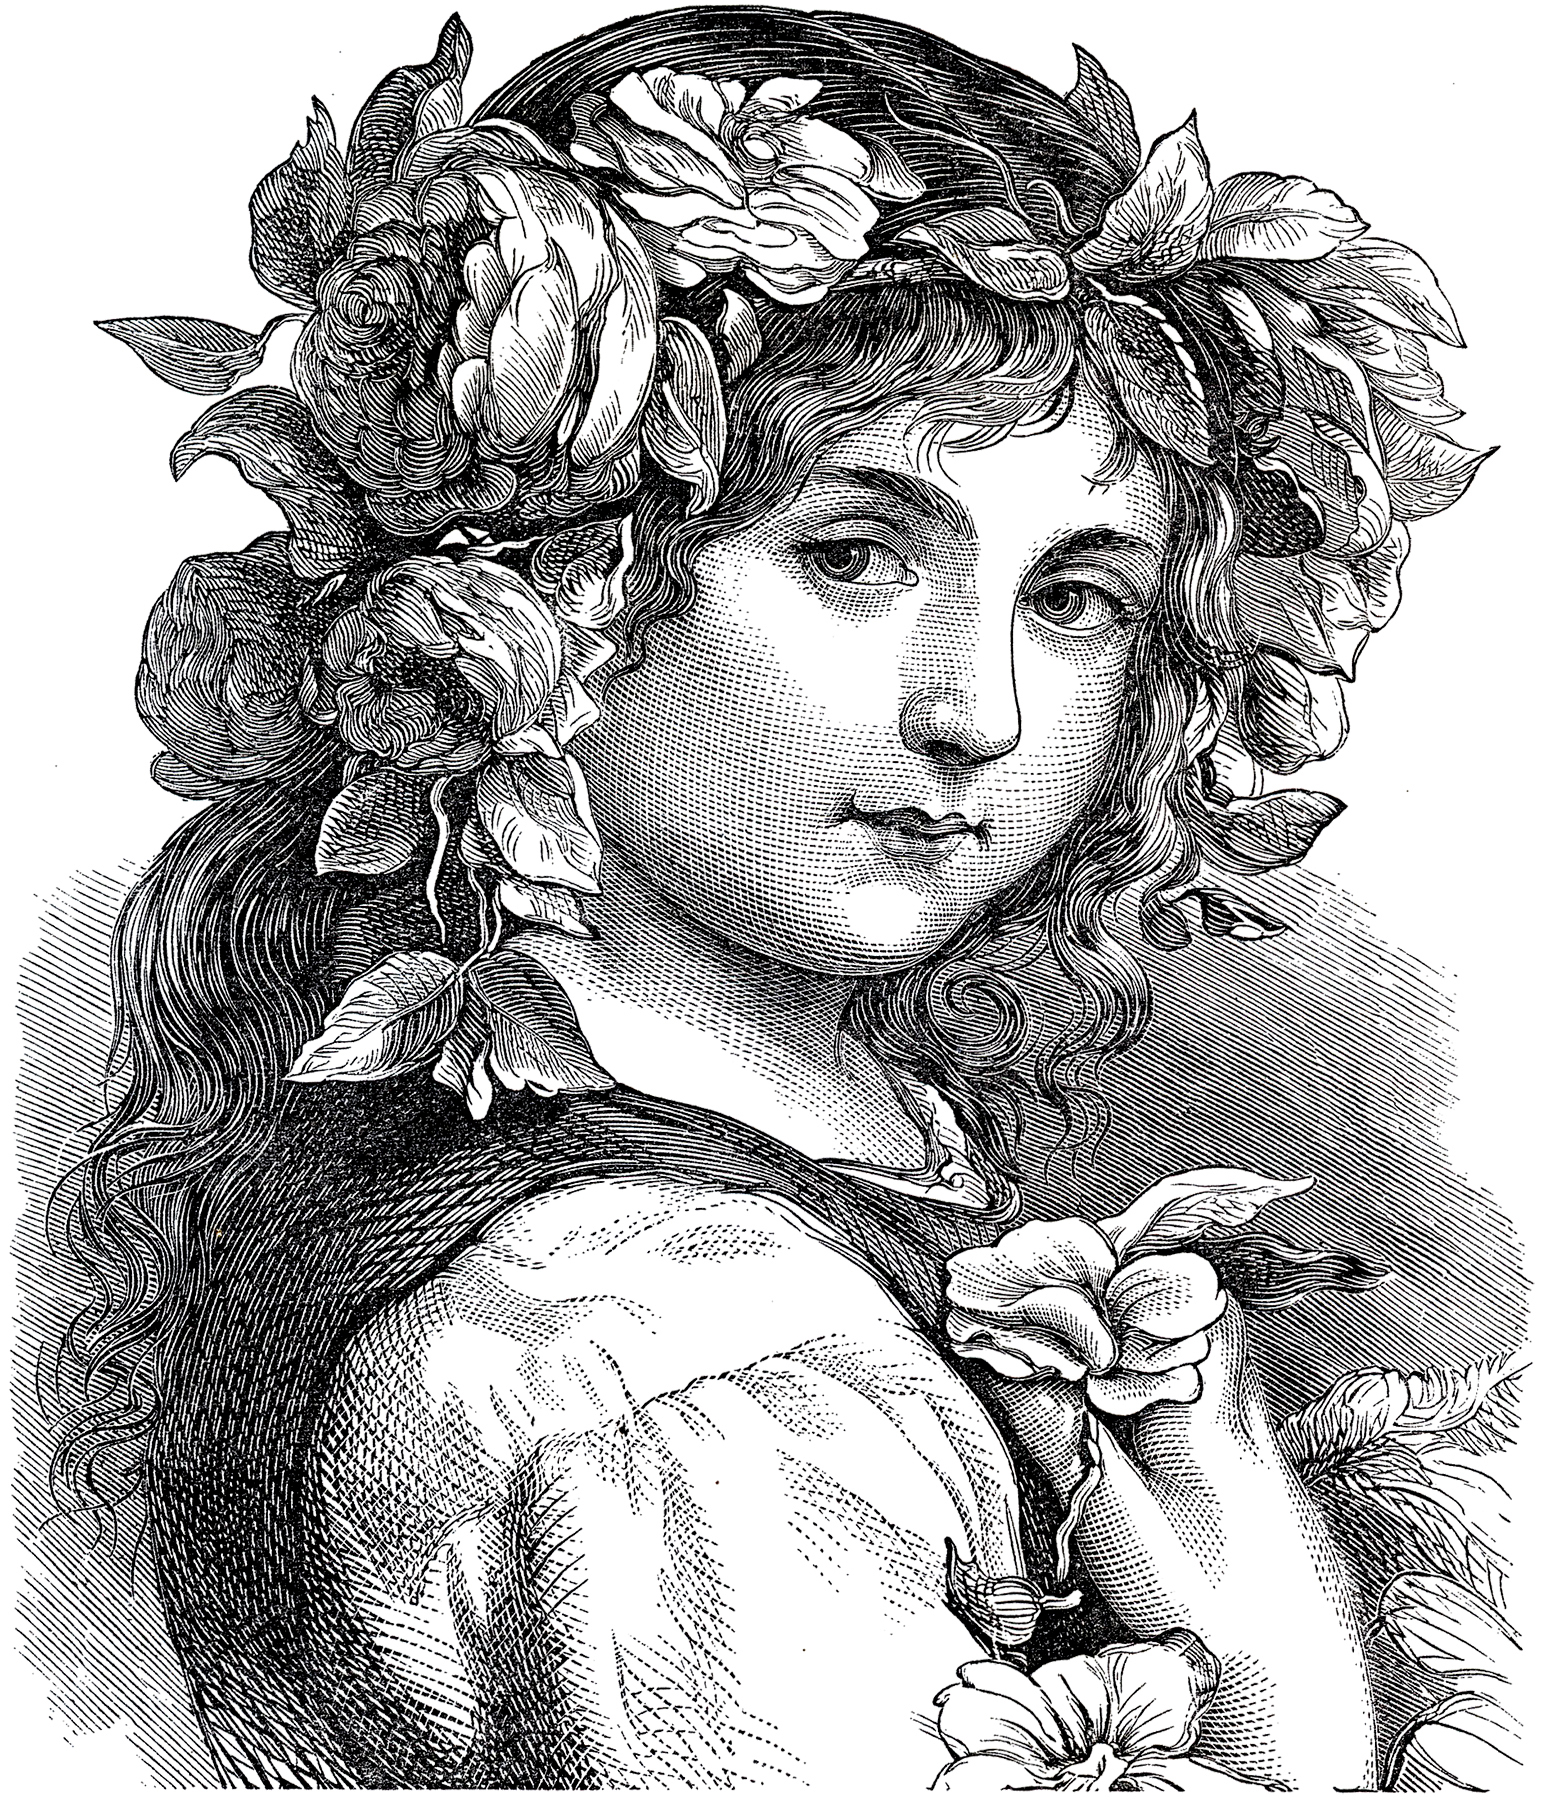 The Graphics Fairy: Gorgeous Antique Flower Girl Engraving!